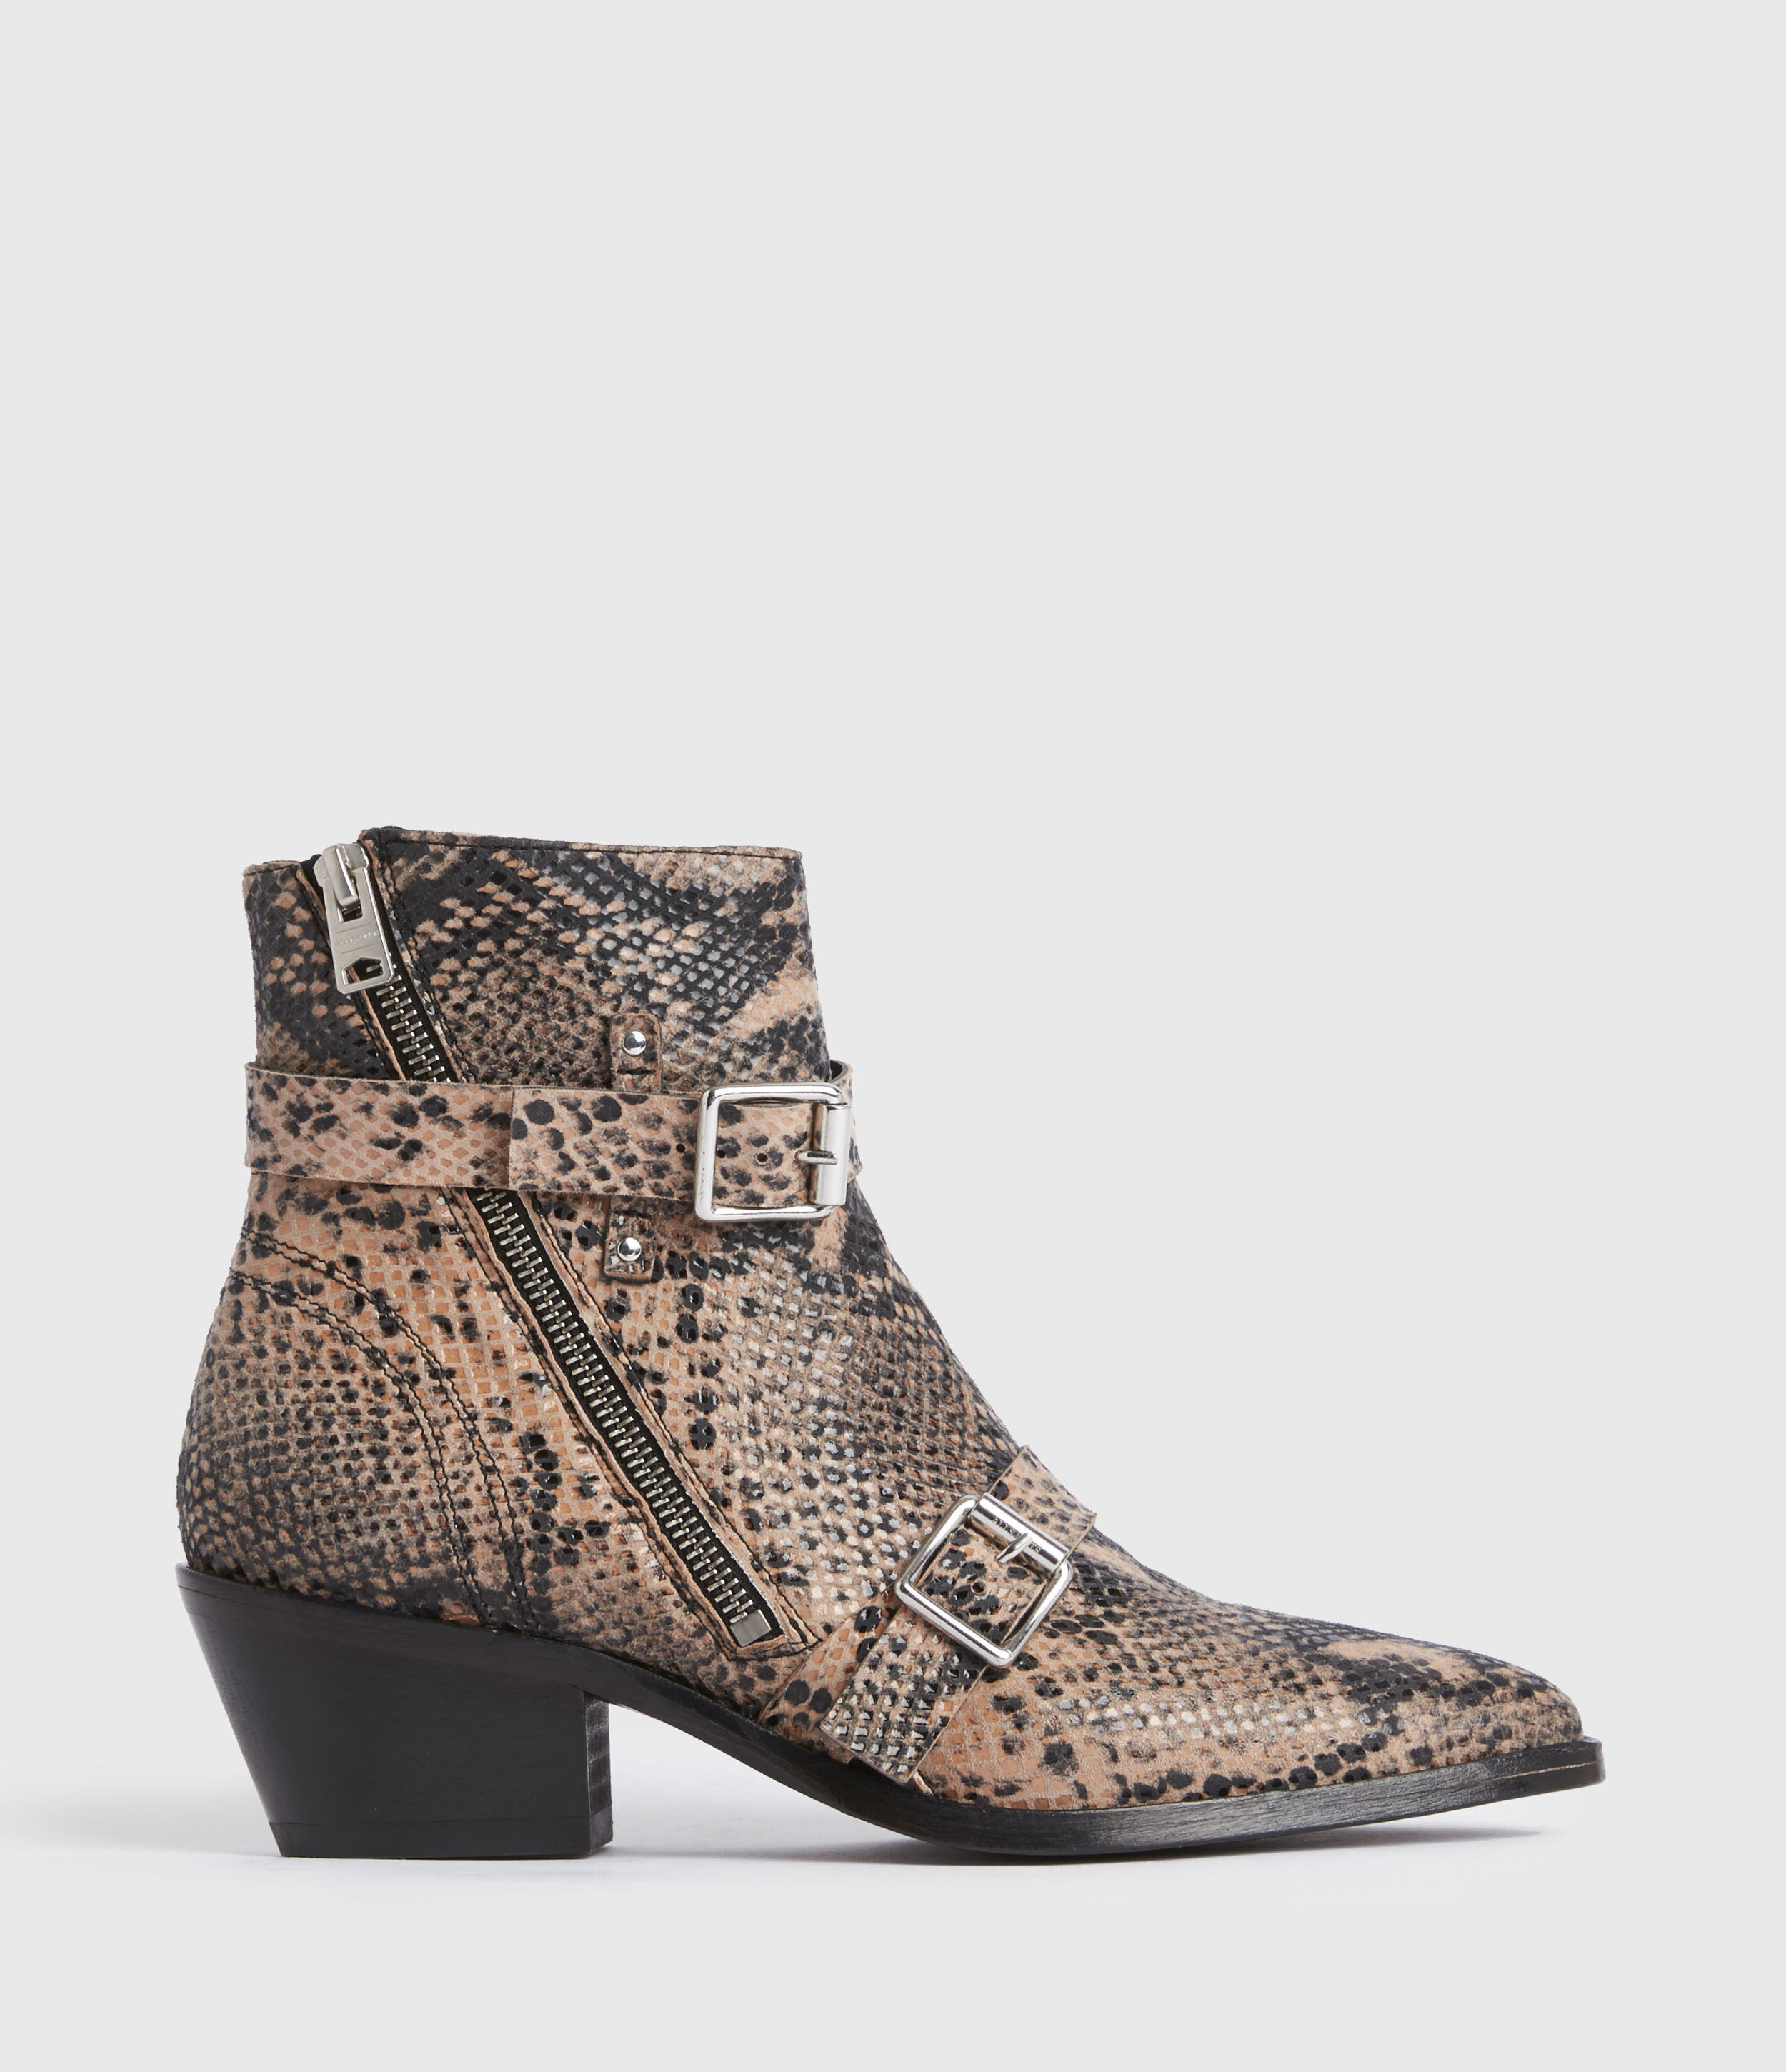 AllSaints Women's Leather Snakeskin Print Lior Boots, Taupe, Size: UK 6/US 8/EU 39